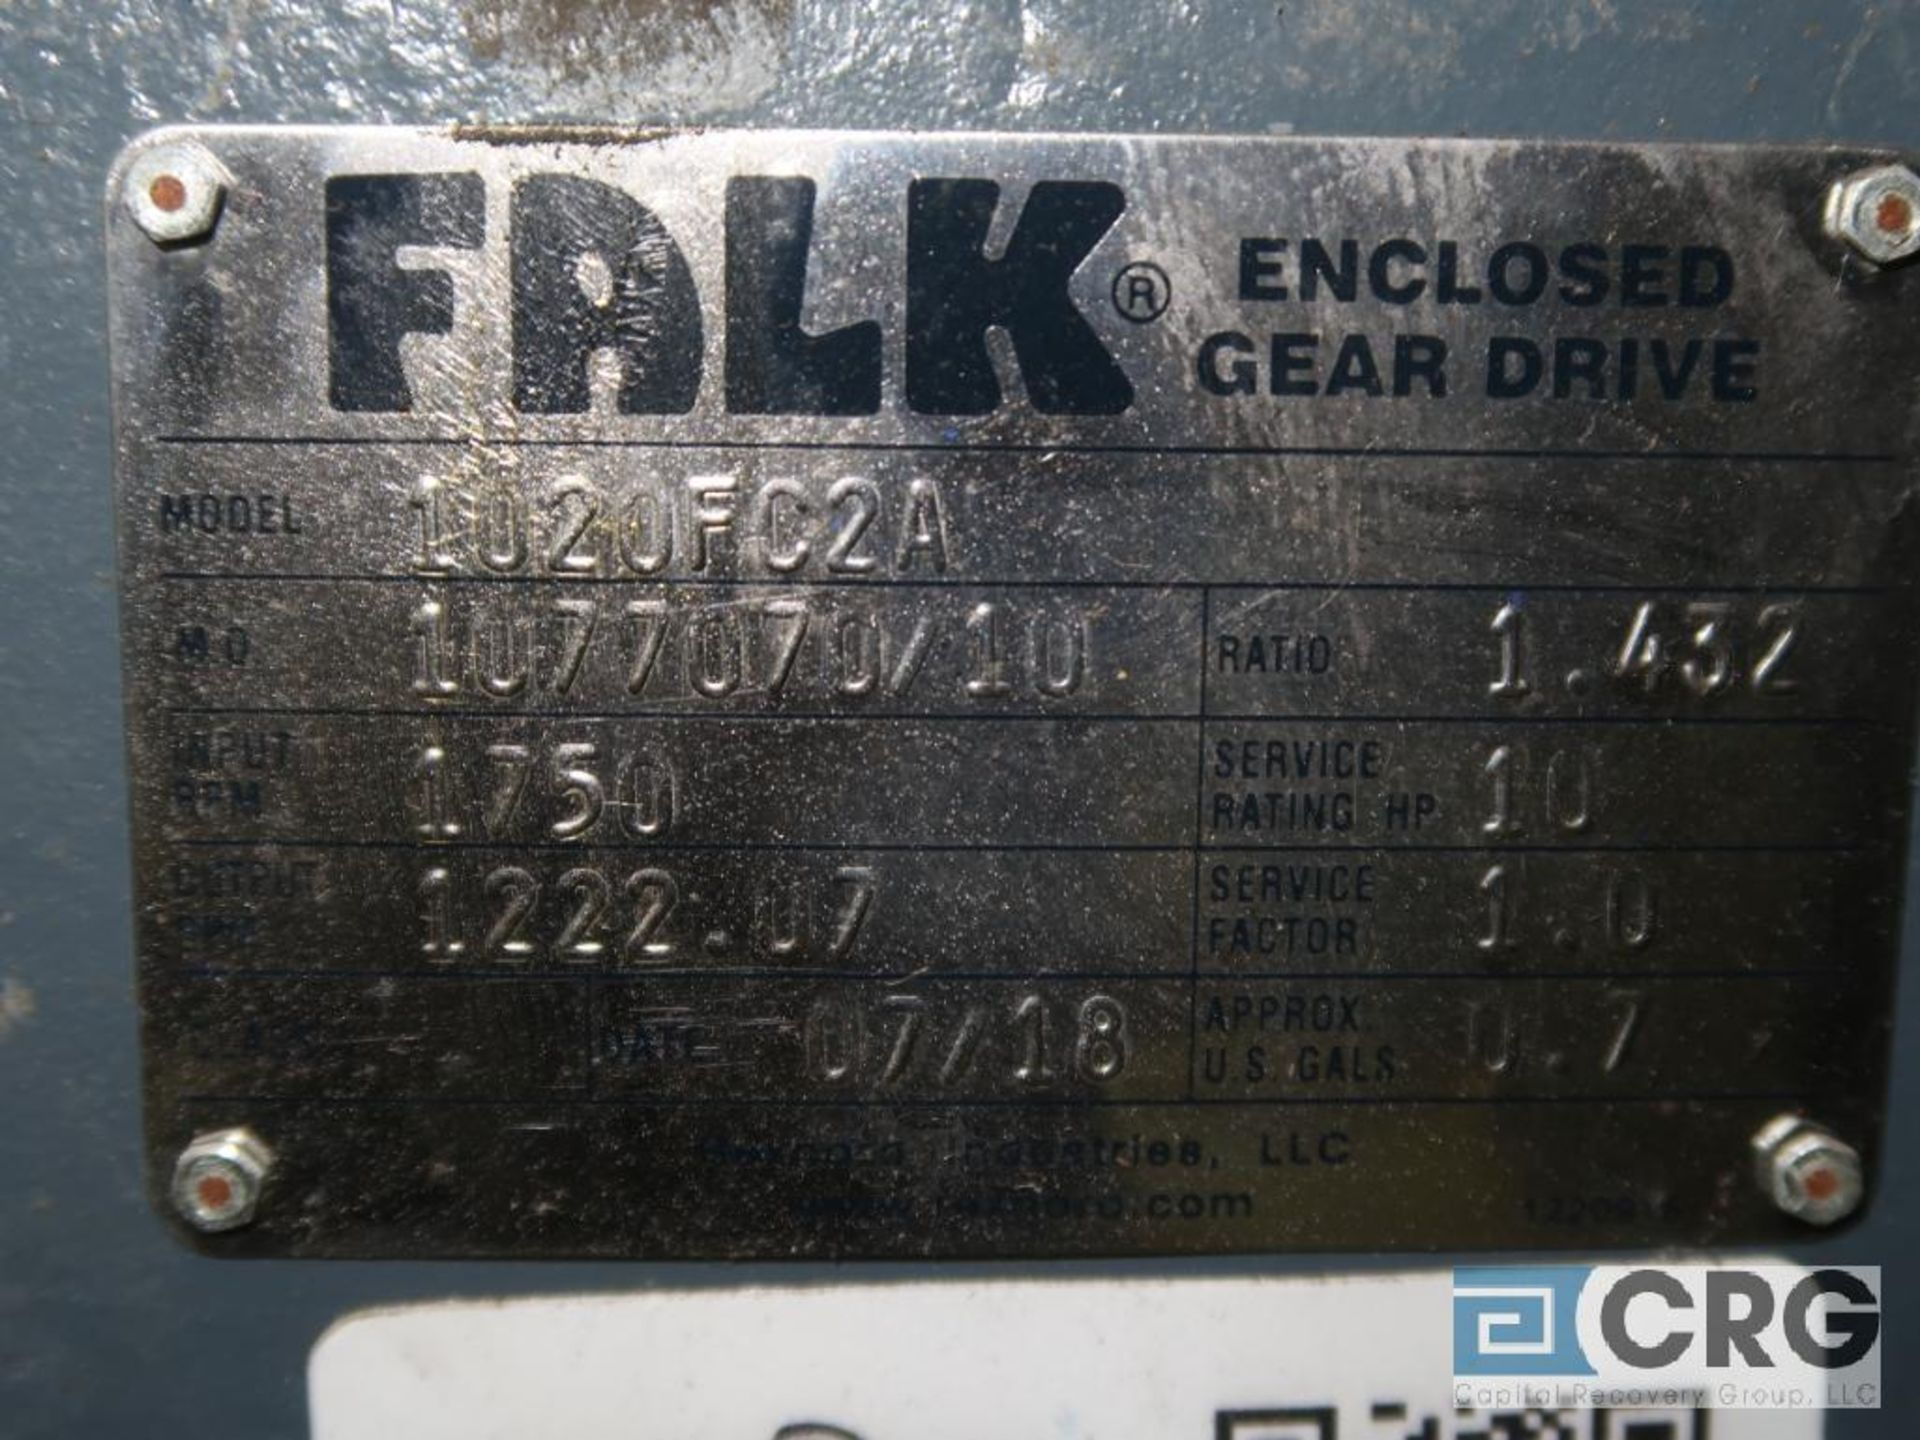 Falk 1020 FC2A gear drive, ratio 1.452, 122.07 RPM, s/n 707010 (Finish Building) - Image 2 of 2